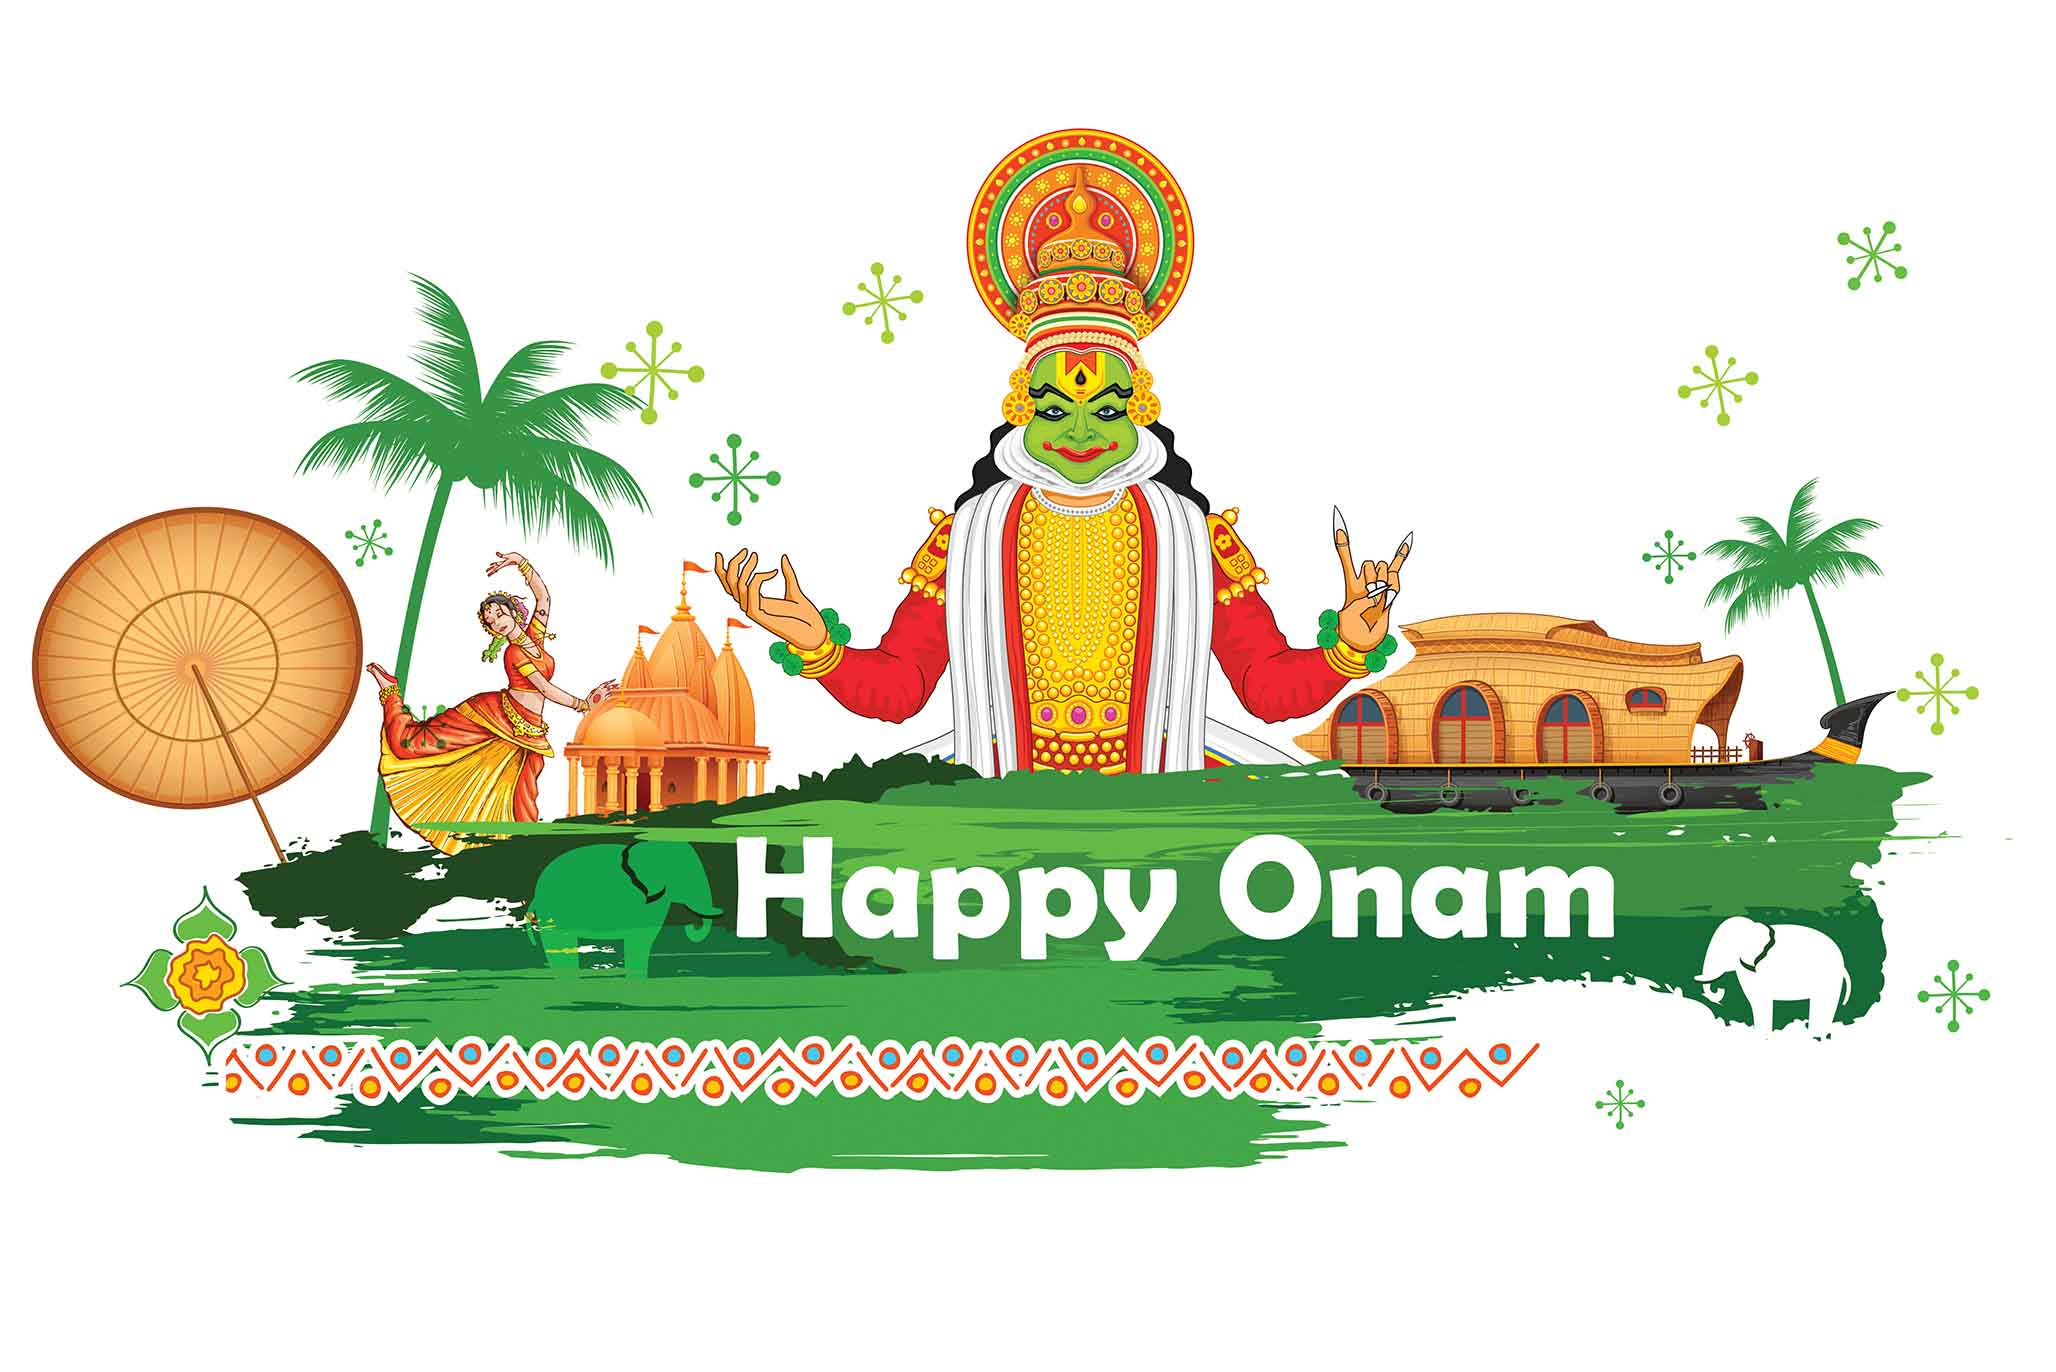 Bringing in Onam with the Security of Good Health | Aviva India Blog